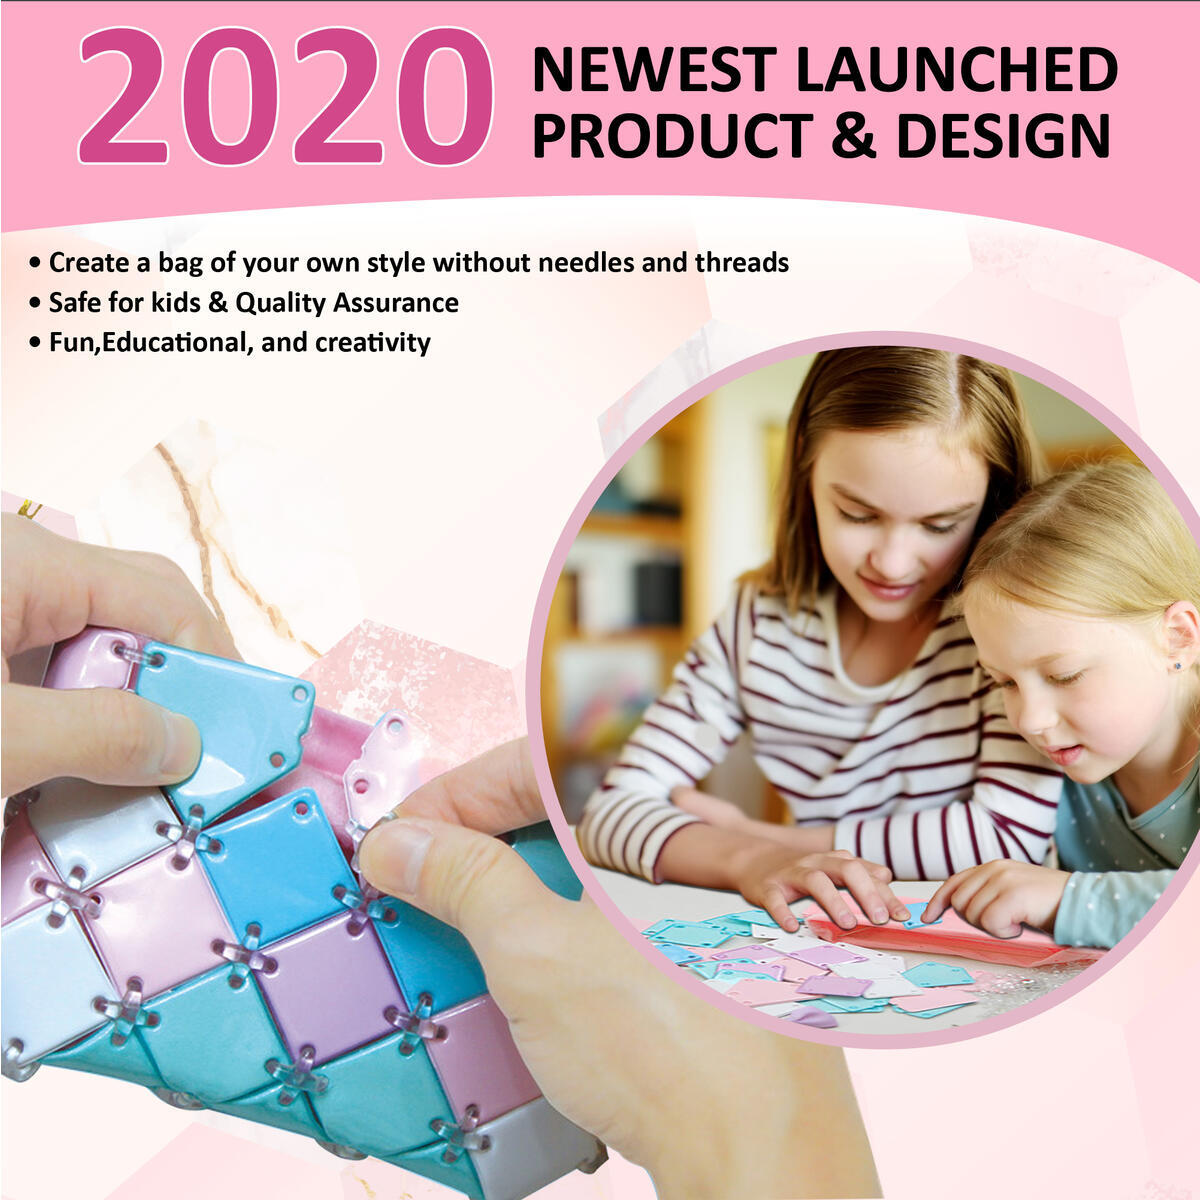 Buddy N Buddies Make Your Own Fashion Purse for Girls Age 6 7 8 9 10 Years Old Best Gift. DIY Wallet for Girls, Fun Arts & Craft Activity Kit for Kids, Cute Girl Gift.